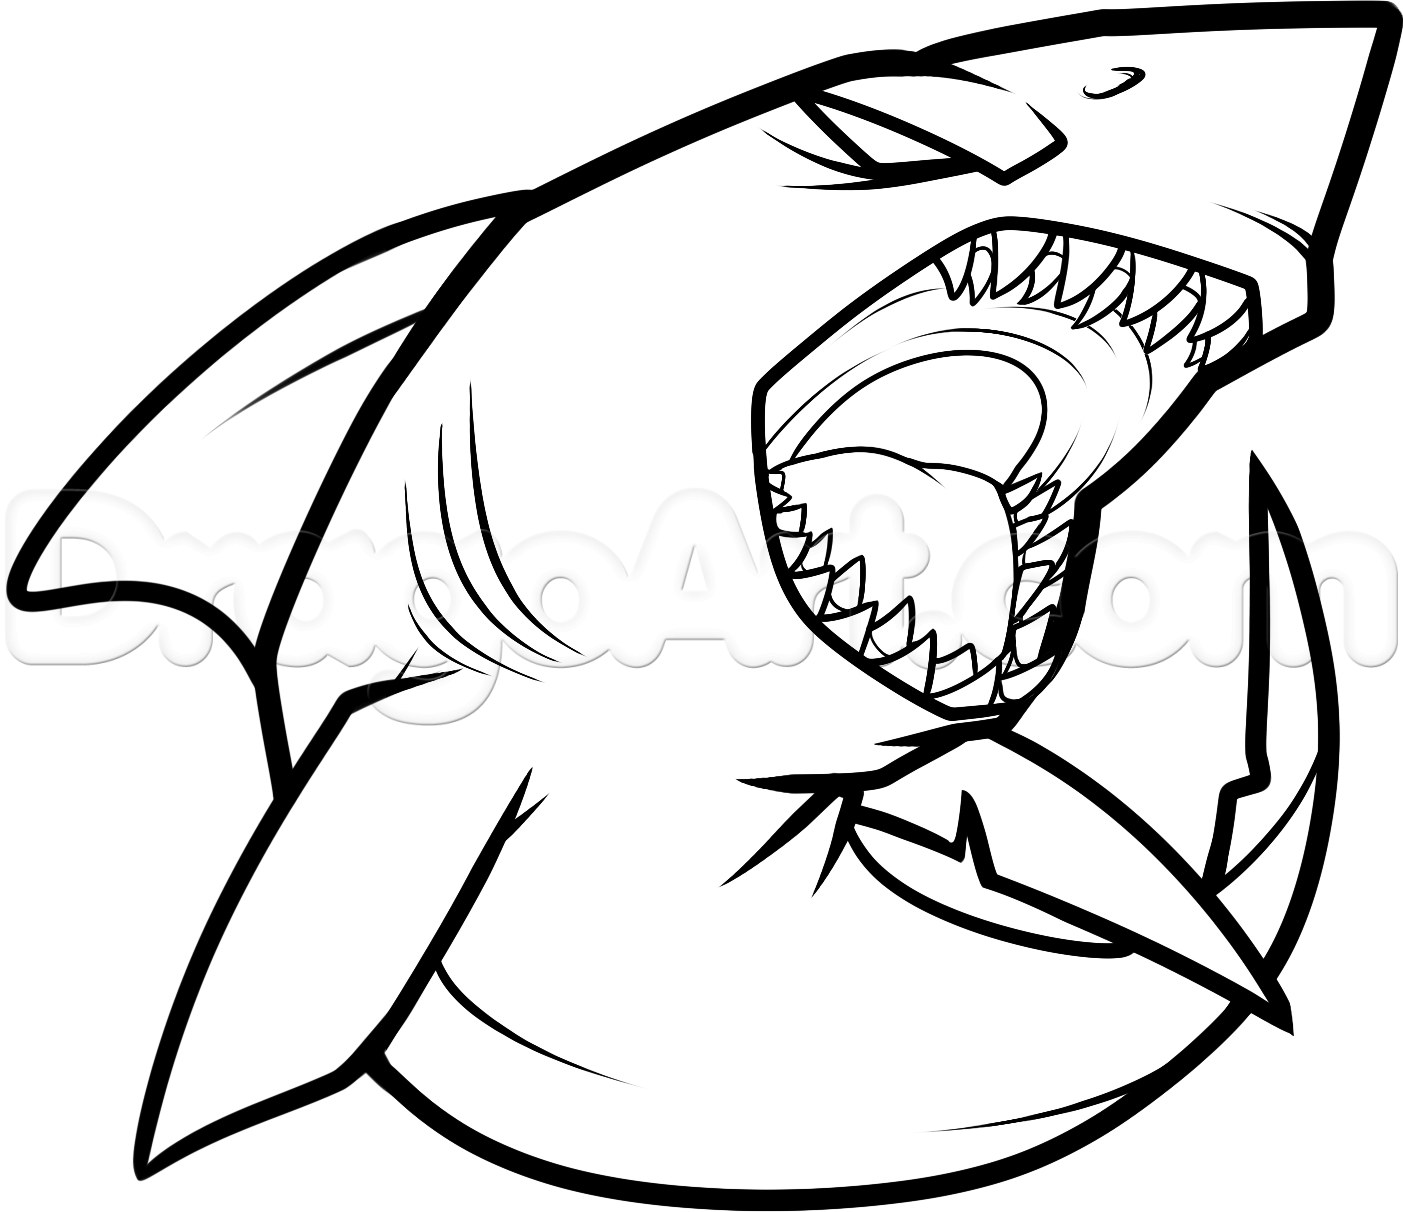 1403x1212 How To Draw A Cool Shark Step Crafty Things Shark Drawing